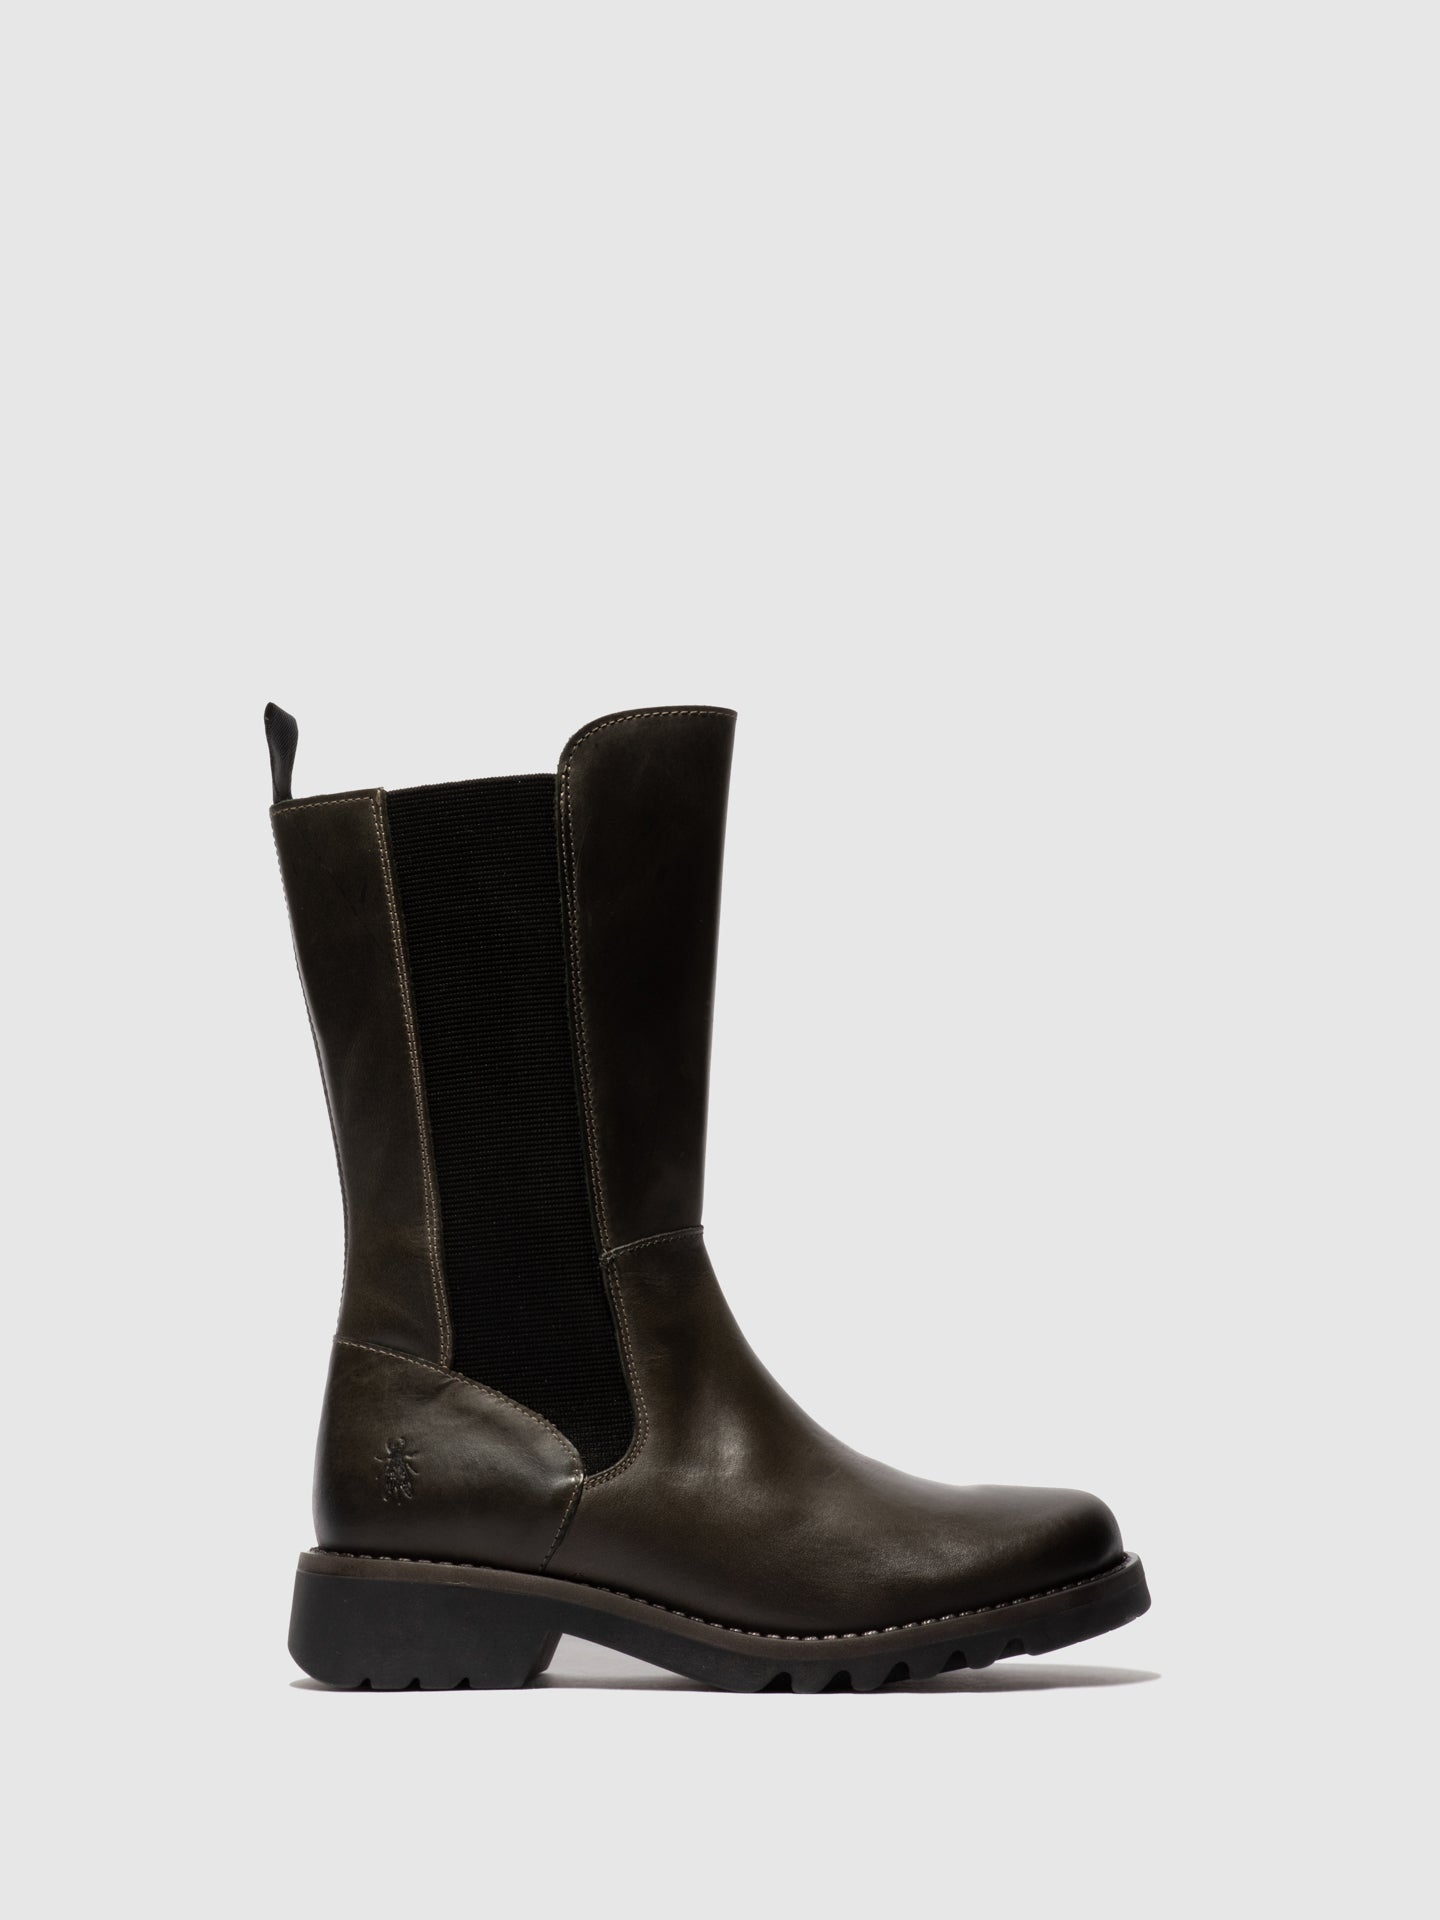 Fly London Chelsea Boots RELM641FLY RUG DIESEL